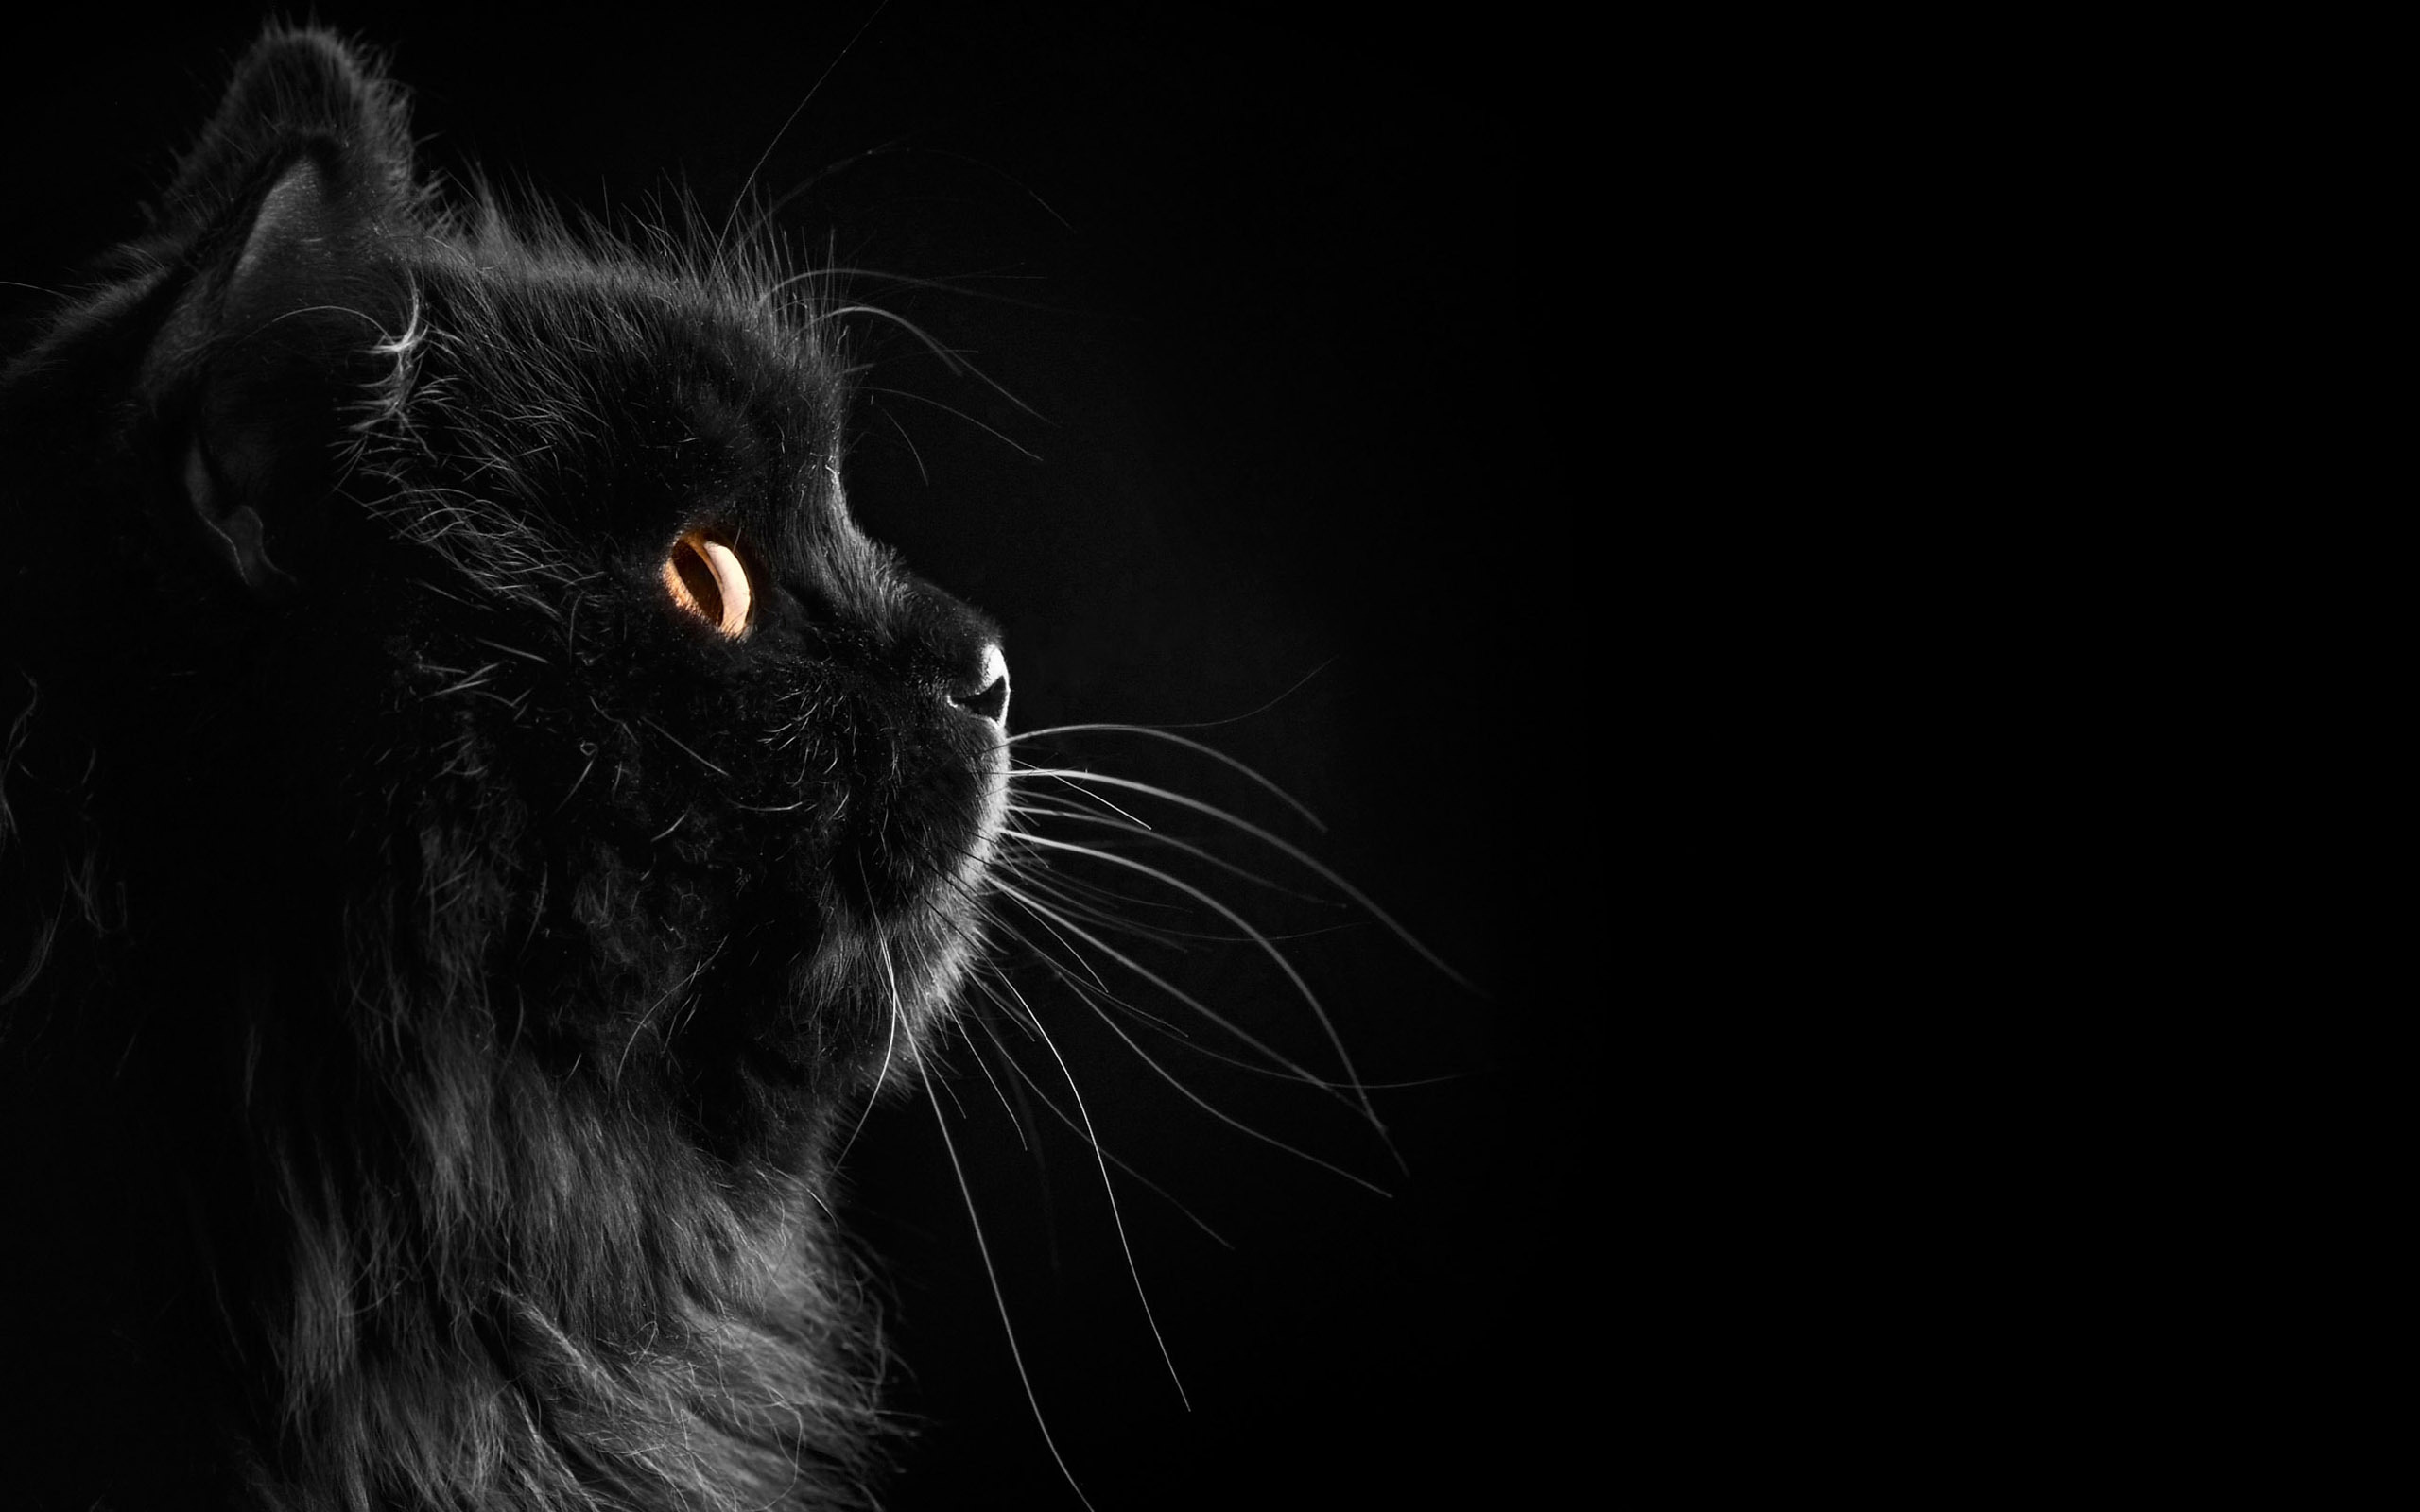 black cat wallpaper 24160 2560x1600px